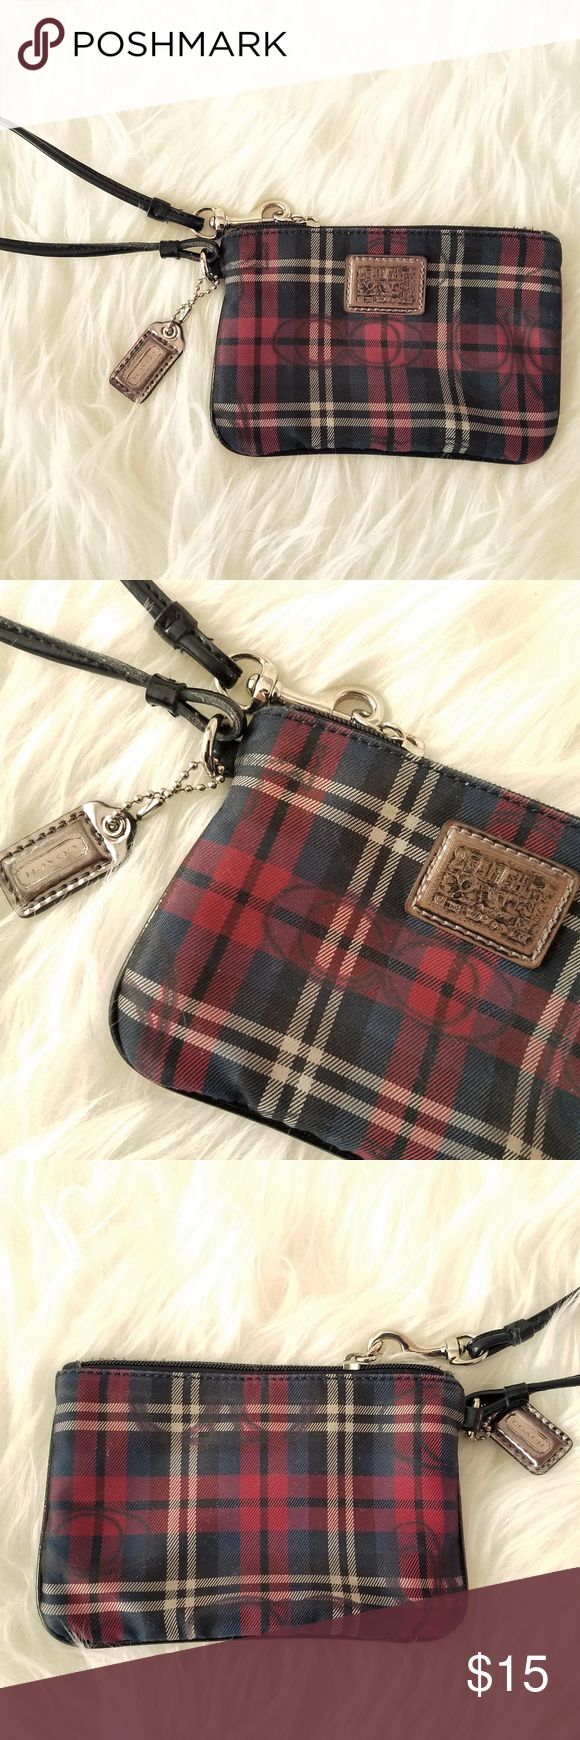 "Coach Wristlet Black, red, and white check pattern with signature coach symbol corner zio wristlet clutch. One compartment. in good used condition. Coach poppy collection. 6""W x4""H x .5""D Coach Bags Clutches & Wristlets"